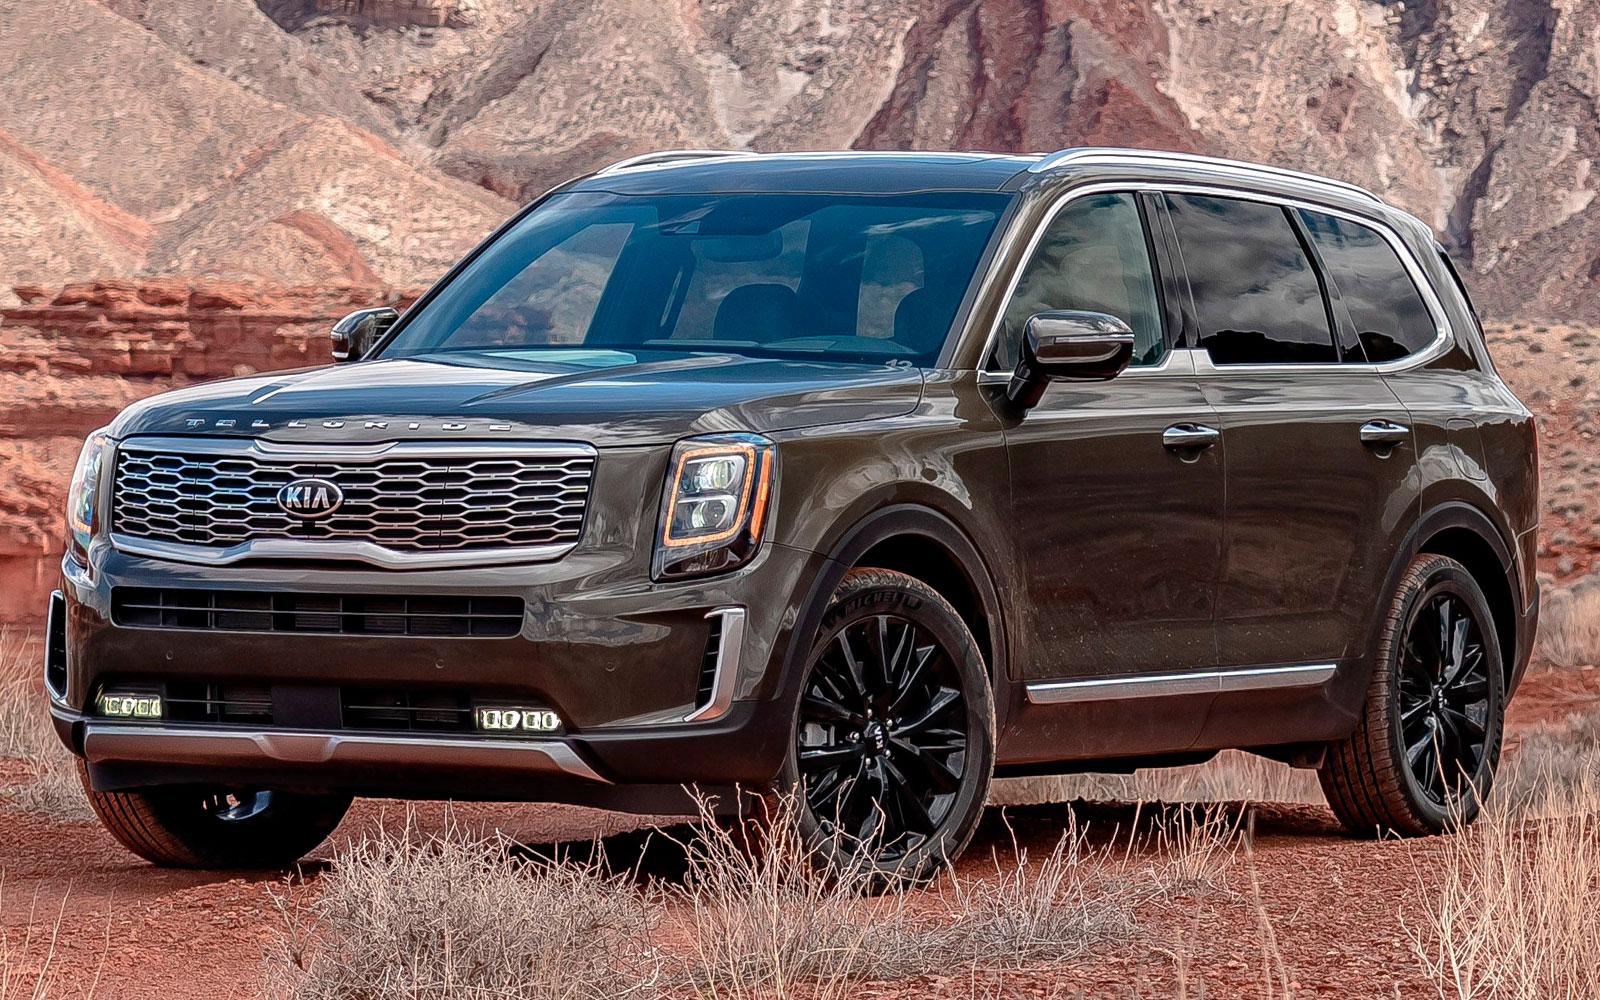 Kia has come up with a new way to sell its Telluride SUV in the United States. The Nightfall Edition will soon hit the showrooms across the country in two trim variants.